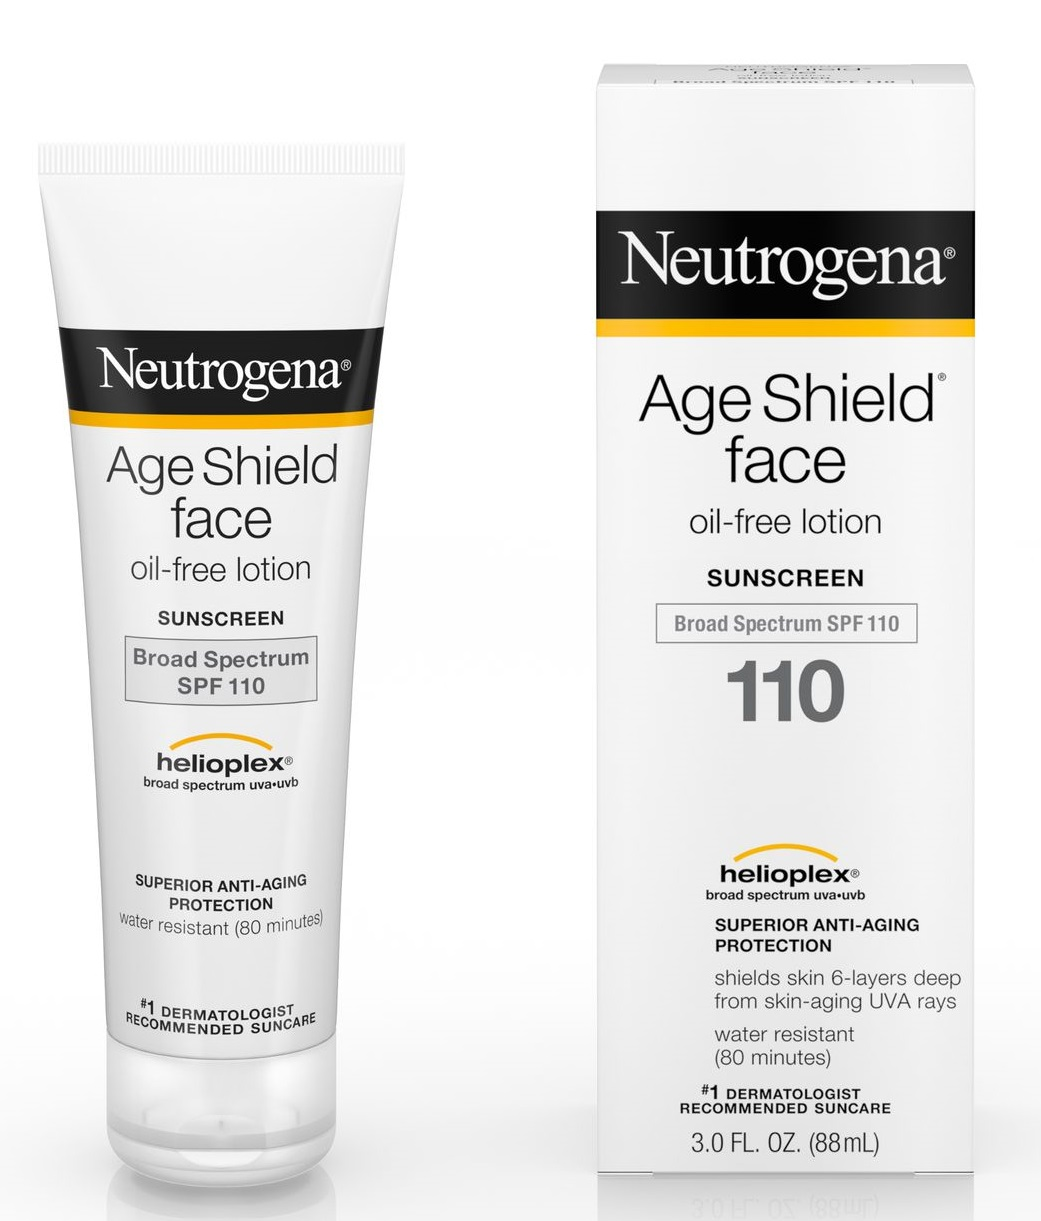 Neutrogena® Age Shield® Face Oil-Free Lotion Sunscreen Broad Spectrum SPF 110